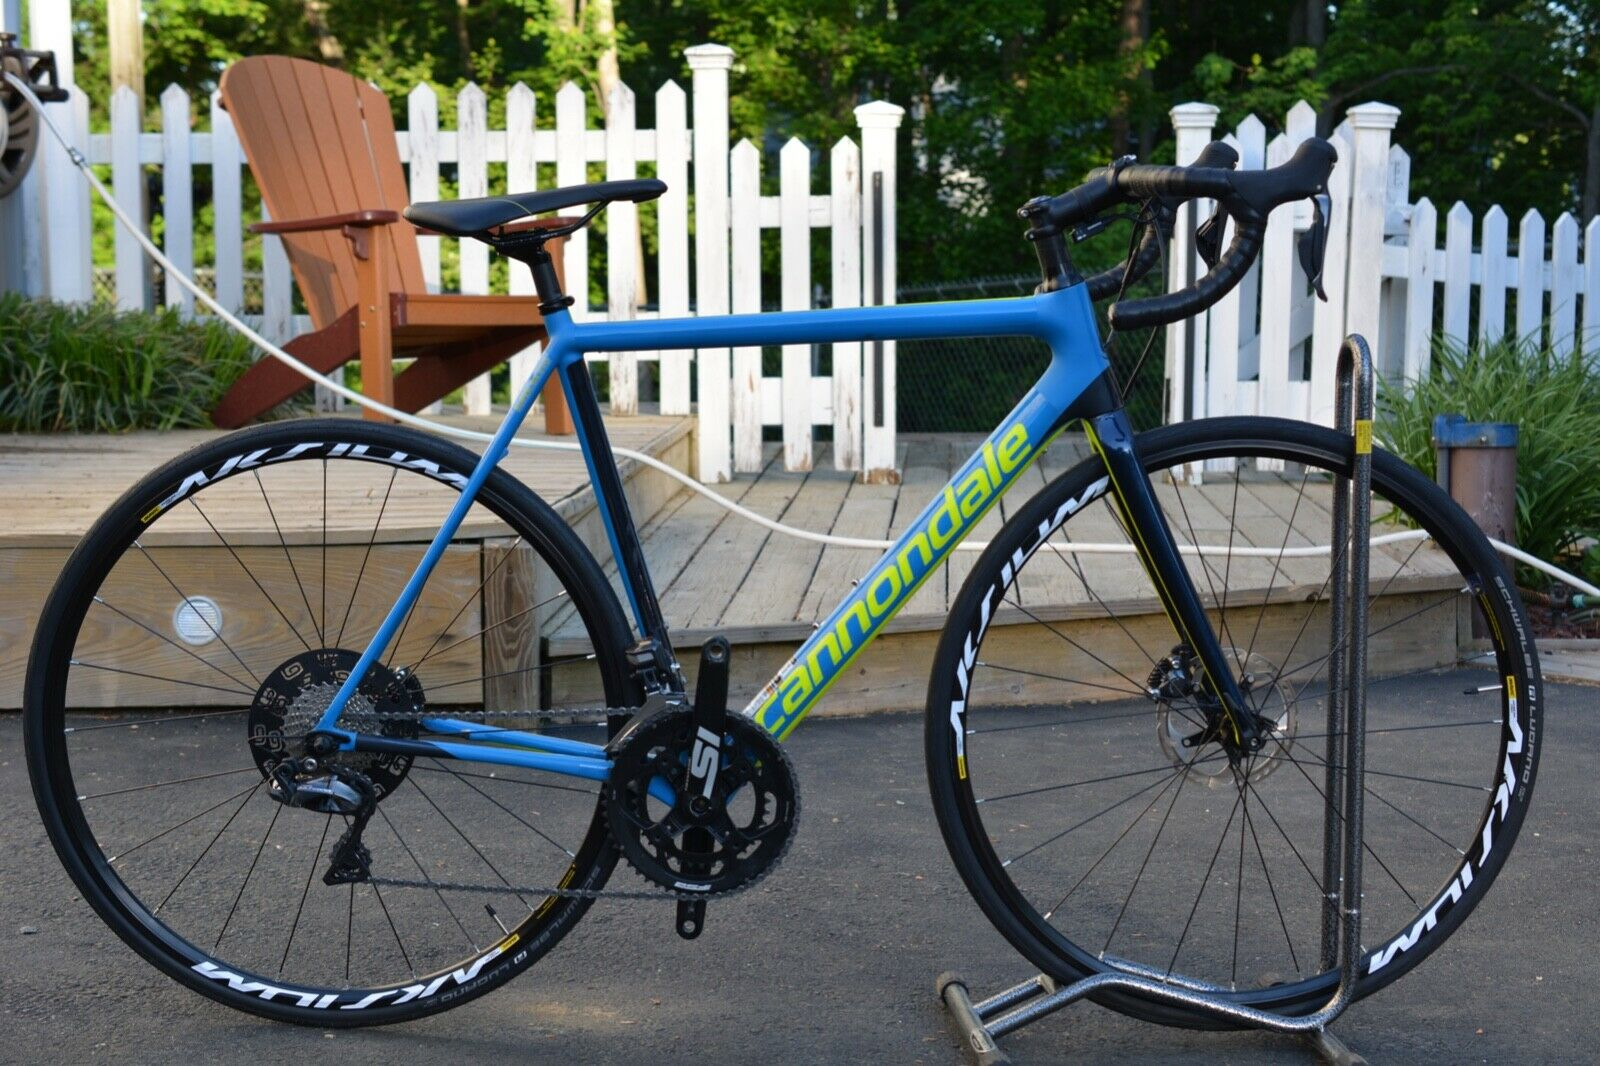 e441dd6f62f New , size 54 Cannondale 2019 road bike, Blue and Yellow